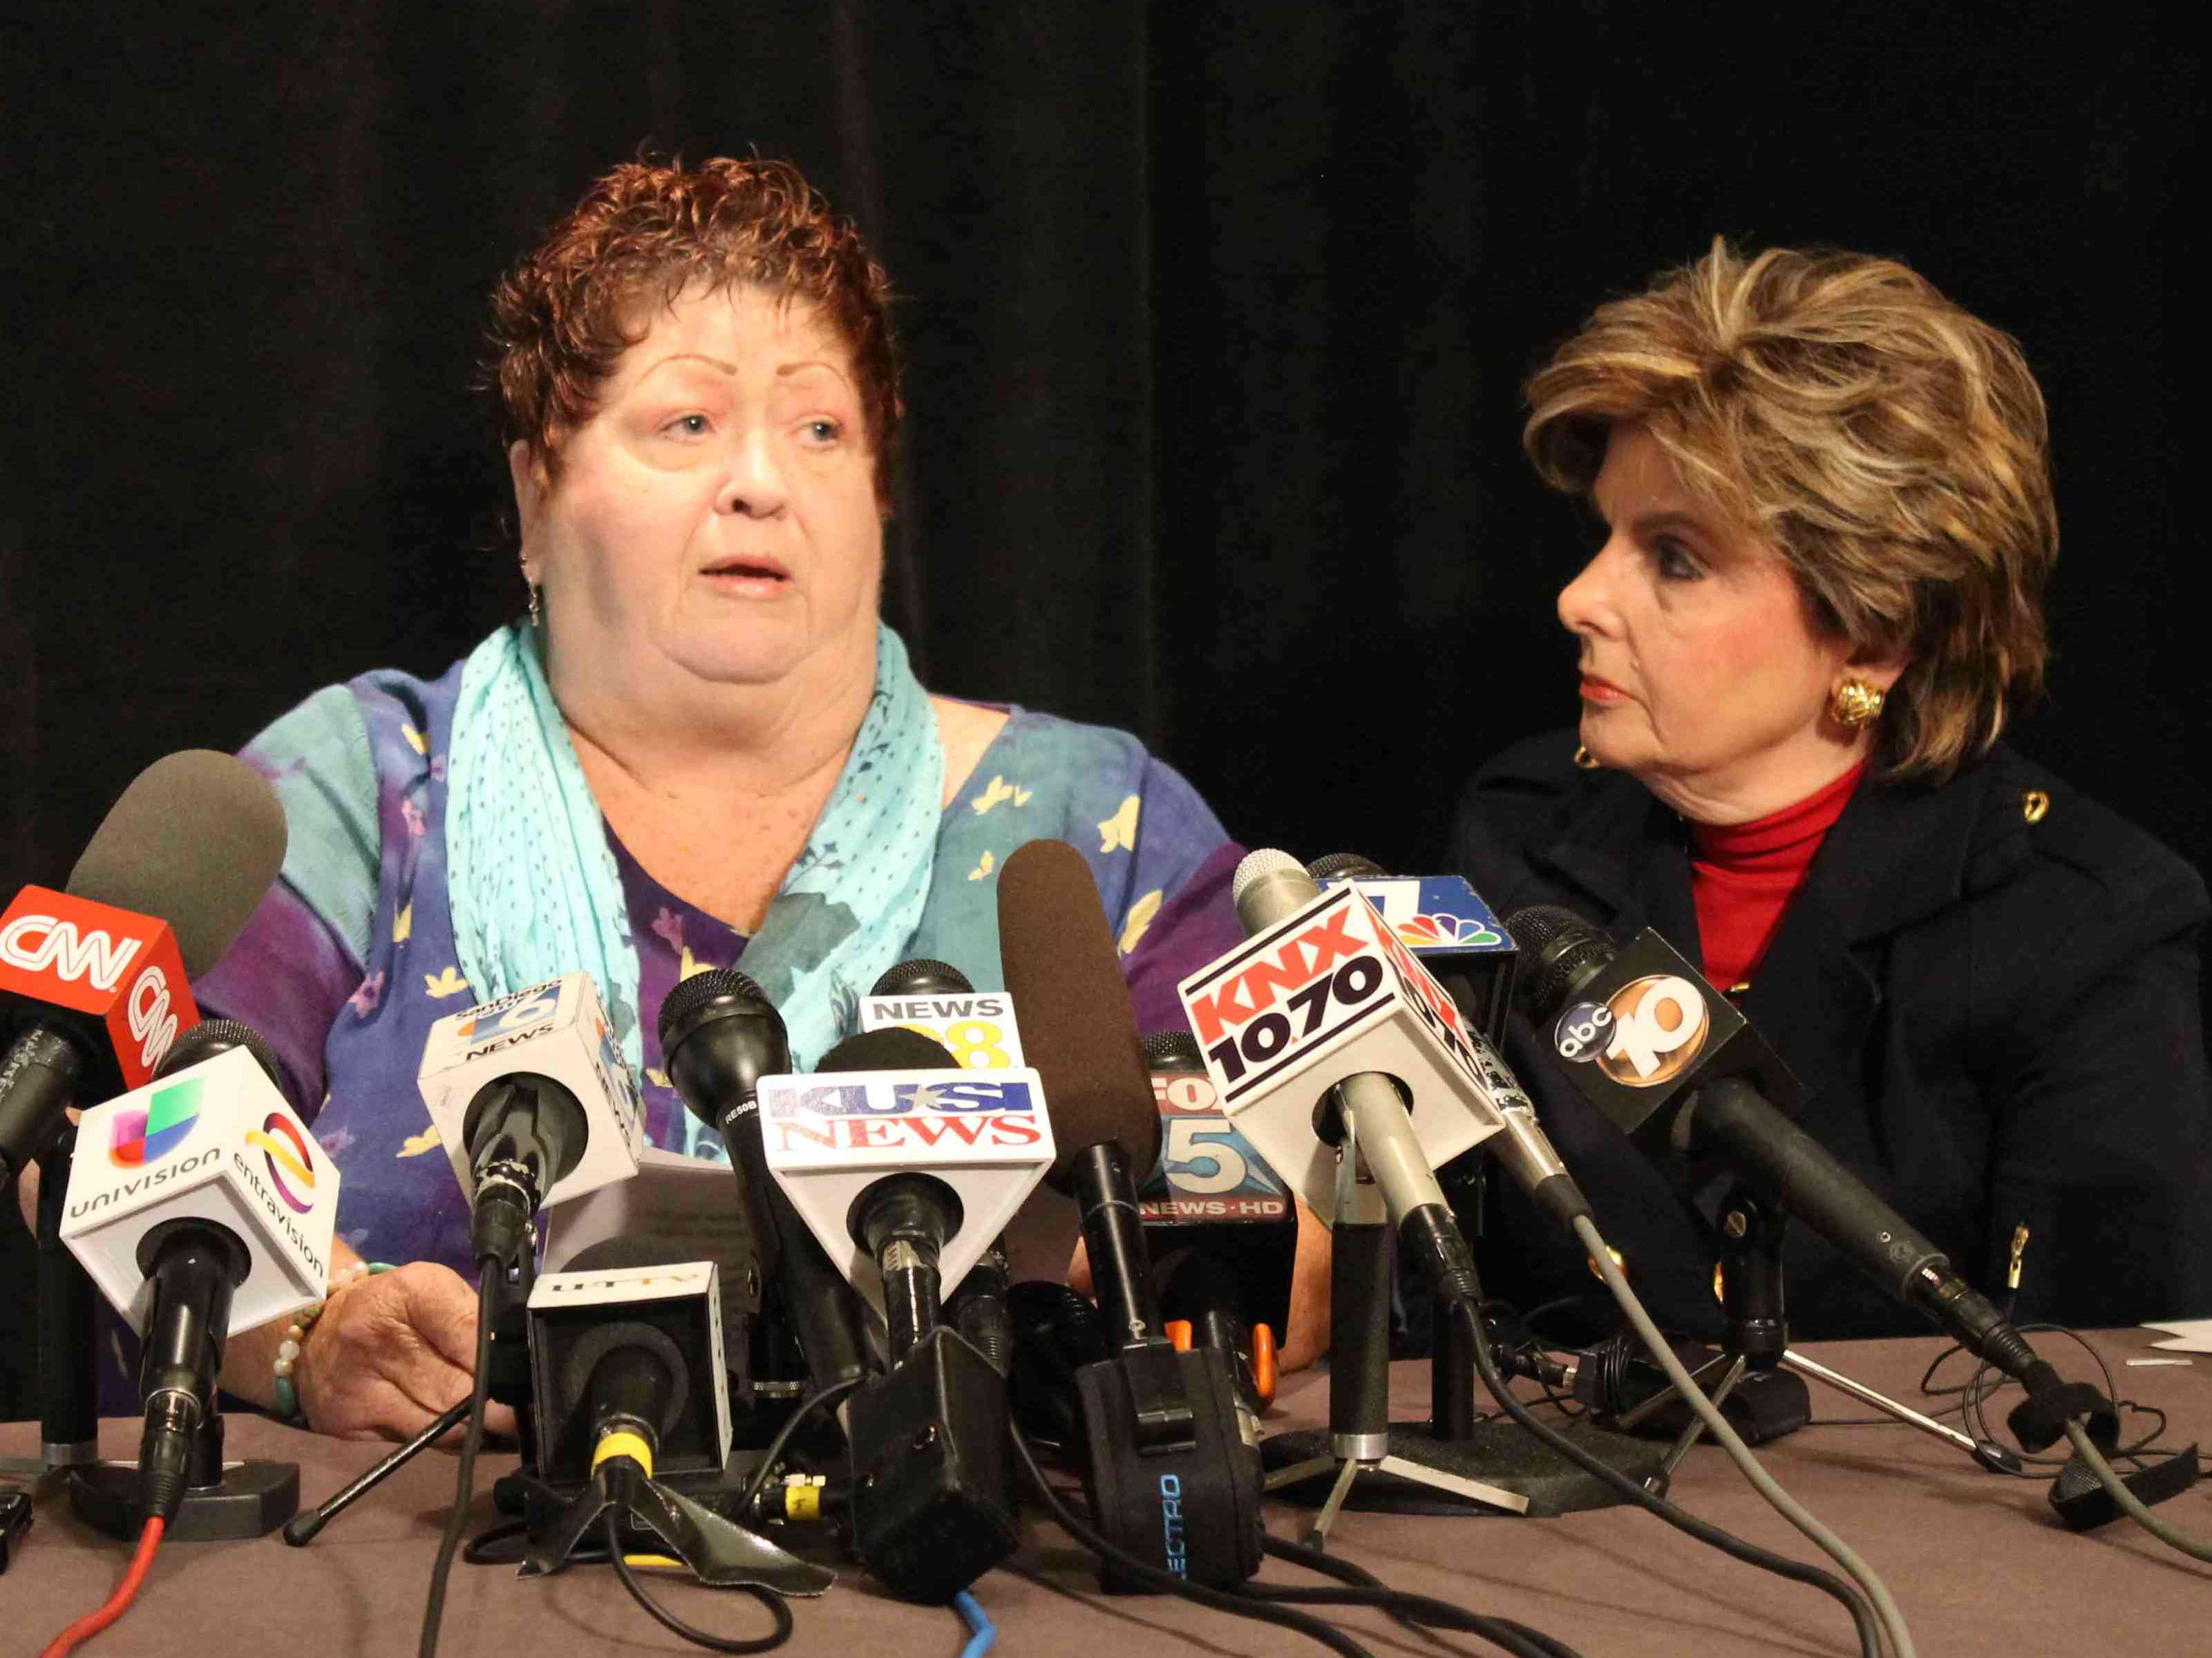 Allred, with New Accuser: 'We Have Not Heard from President Obama' on Filner